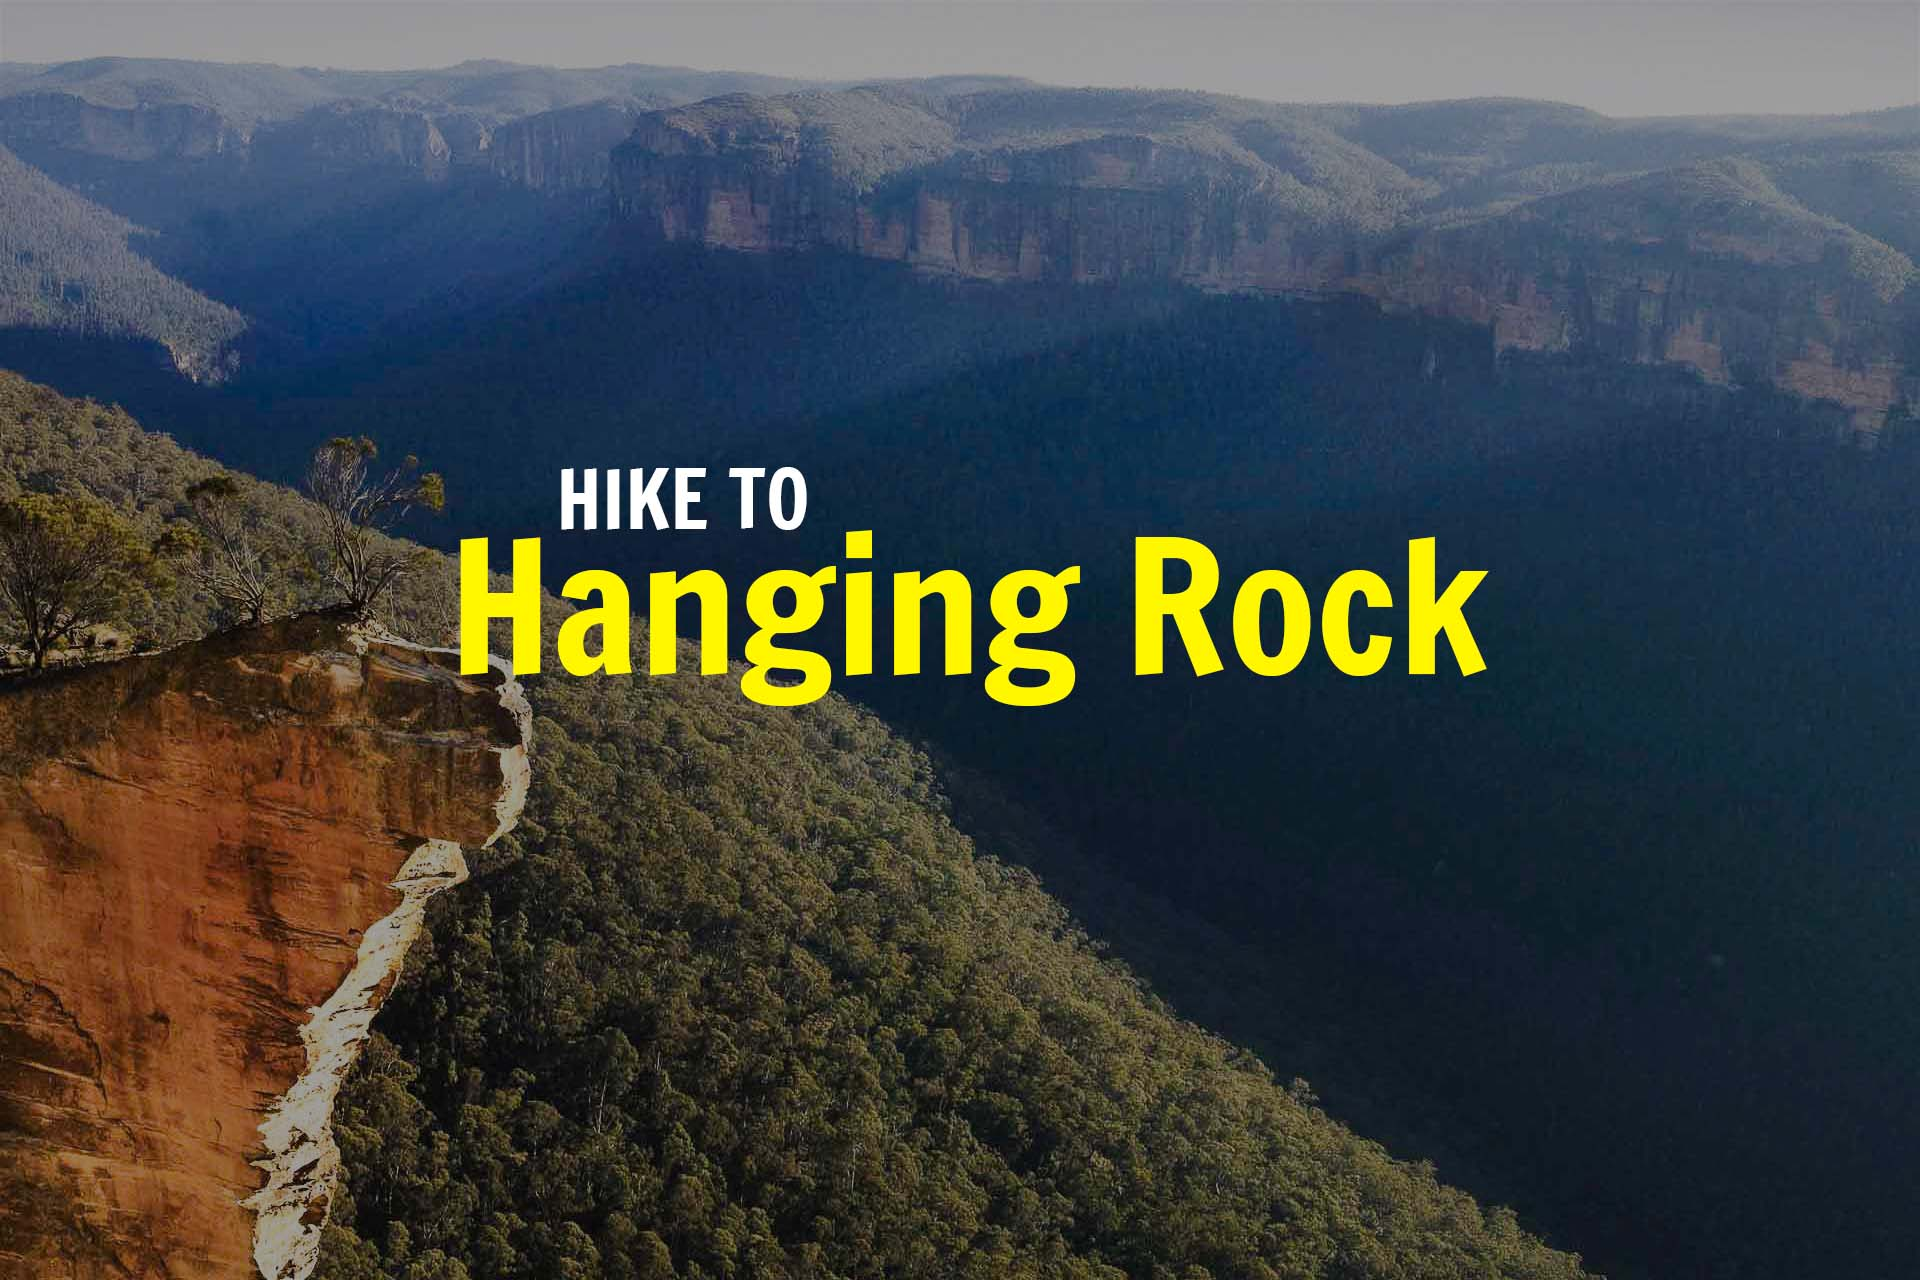 hanging-rock-hike-things-to-do-in-blue-mountains